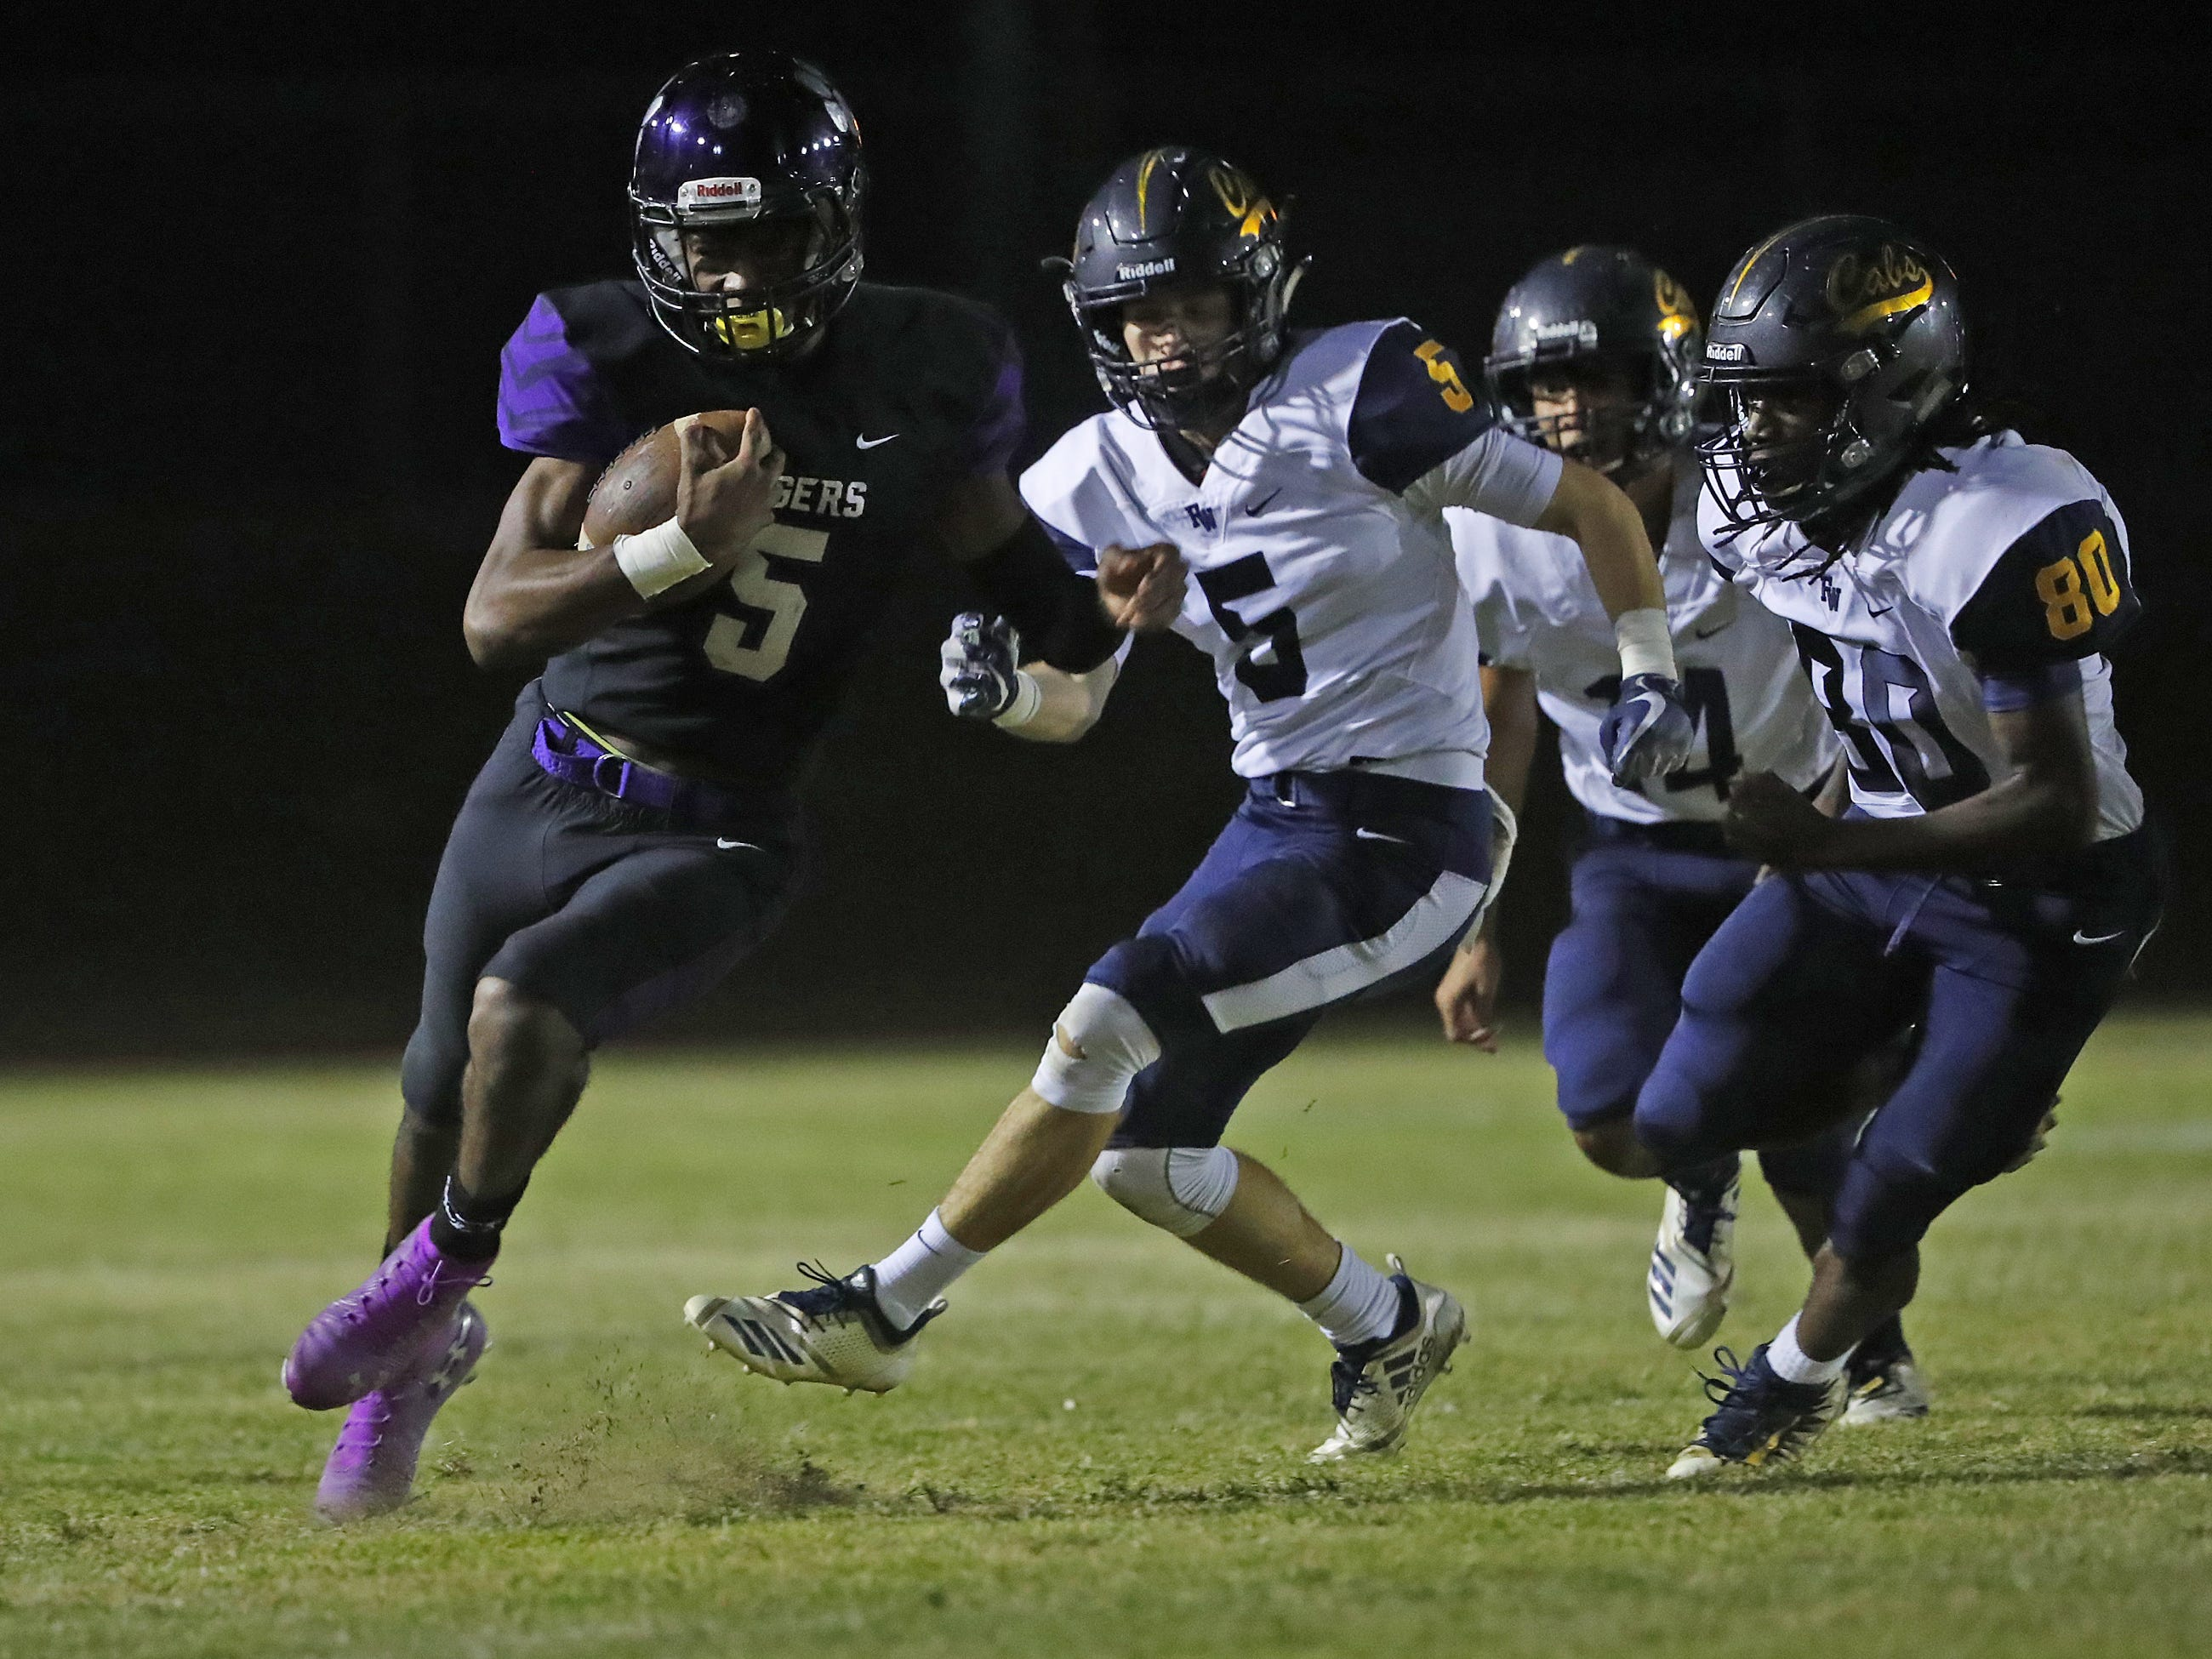 Millennium's Zareq Brown (5) runs for a first down past Flowing Wells' Isaiah Williams-Russell (80) during the first round of the AIA State Football Playoffs at Millennium High School in Goodyear, Ariz. on Nov. 2, 2018.